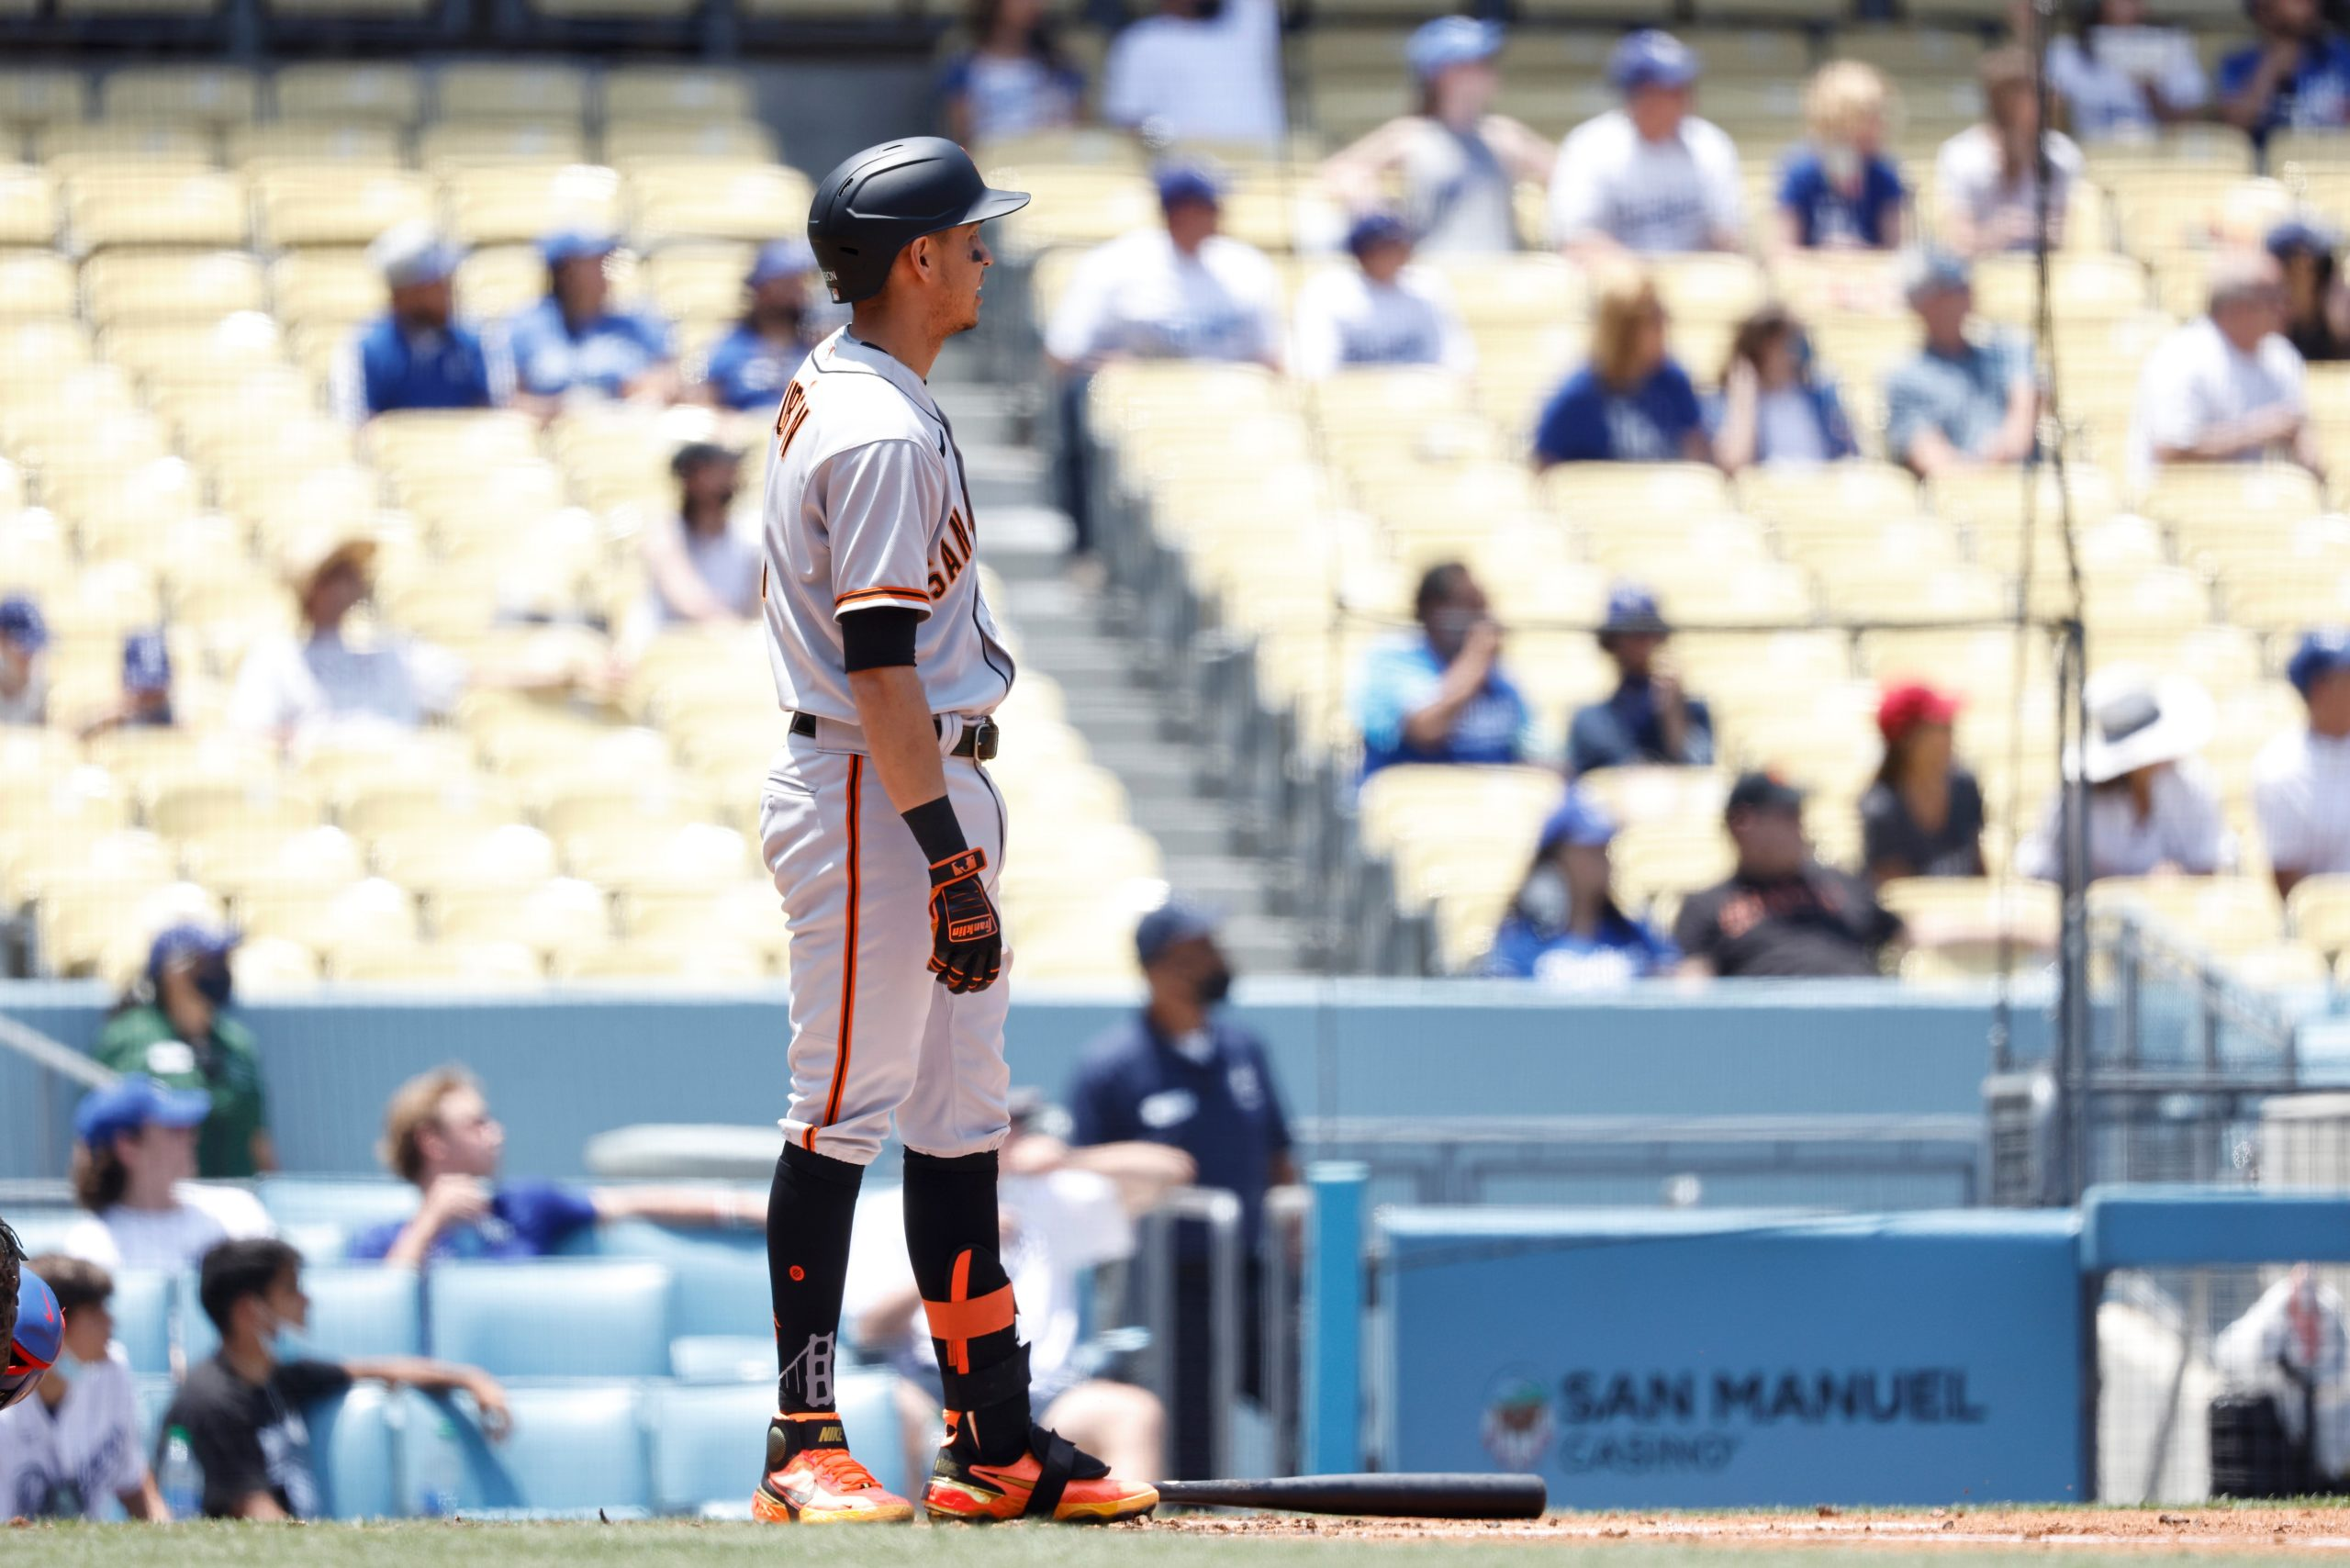 Dodgers Late Comeback Falls Short as Giants Hold On, Take Series, 5-4 – NBC Los Angeles